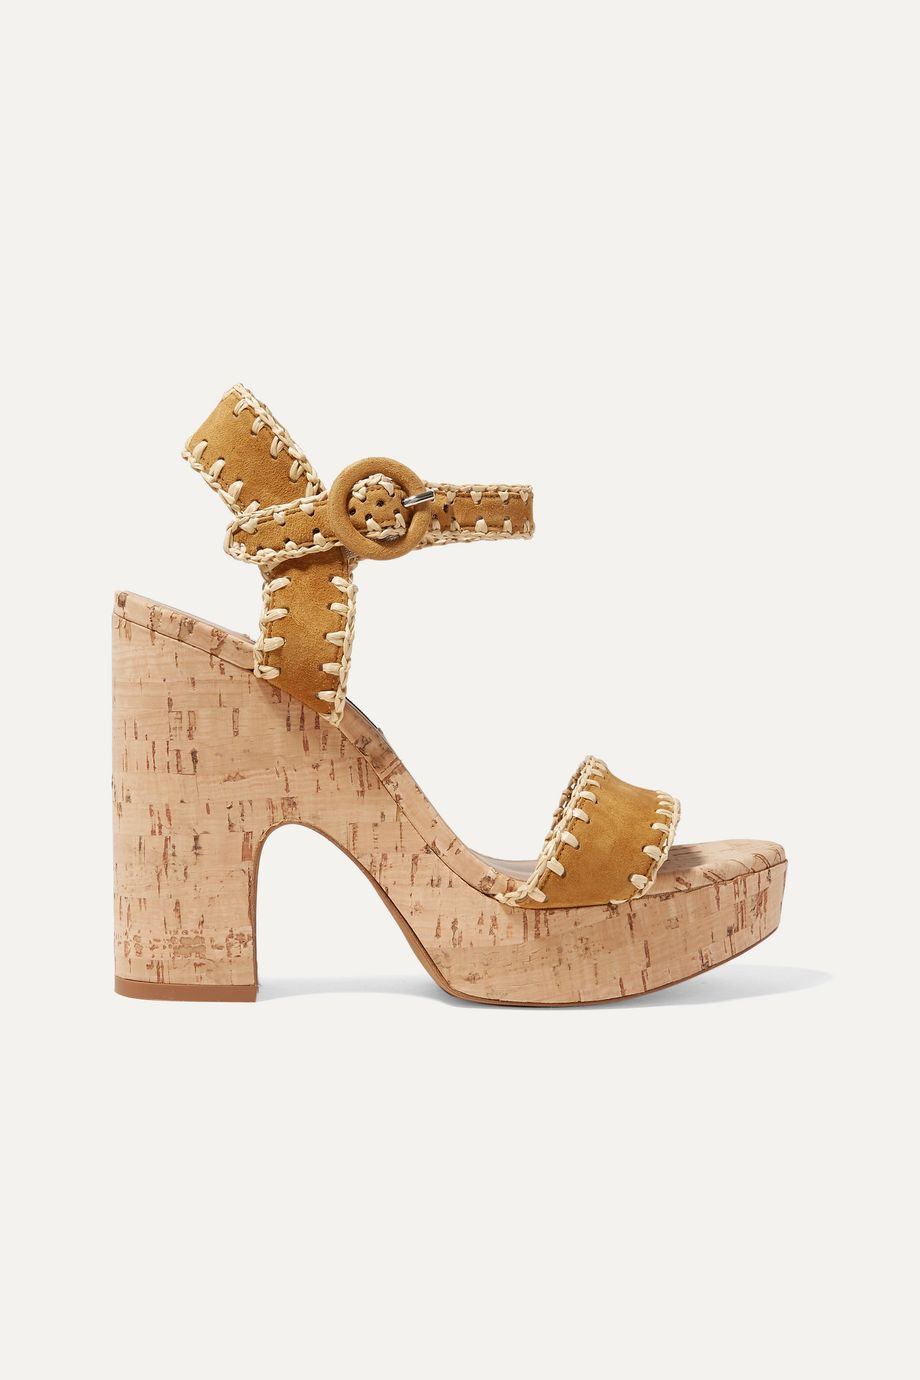 Tabitha Simmons Elena whipstitched raffia and suede platform sandals